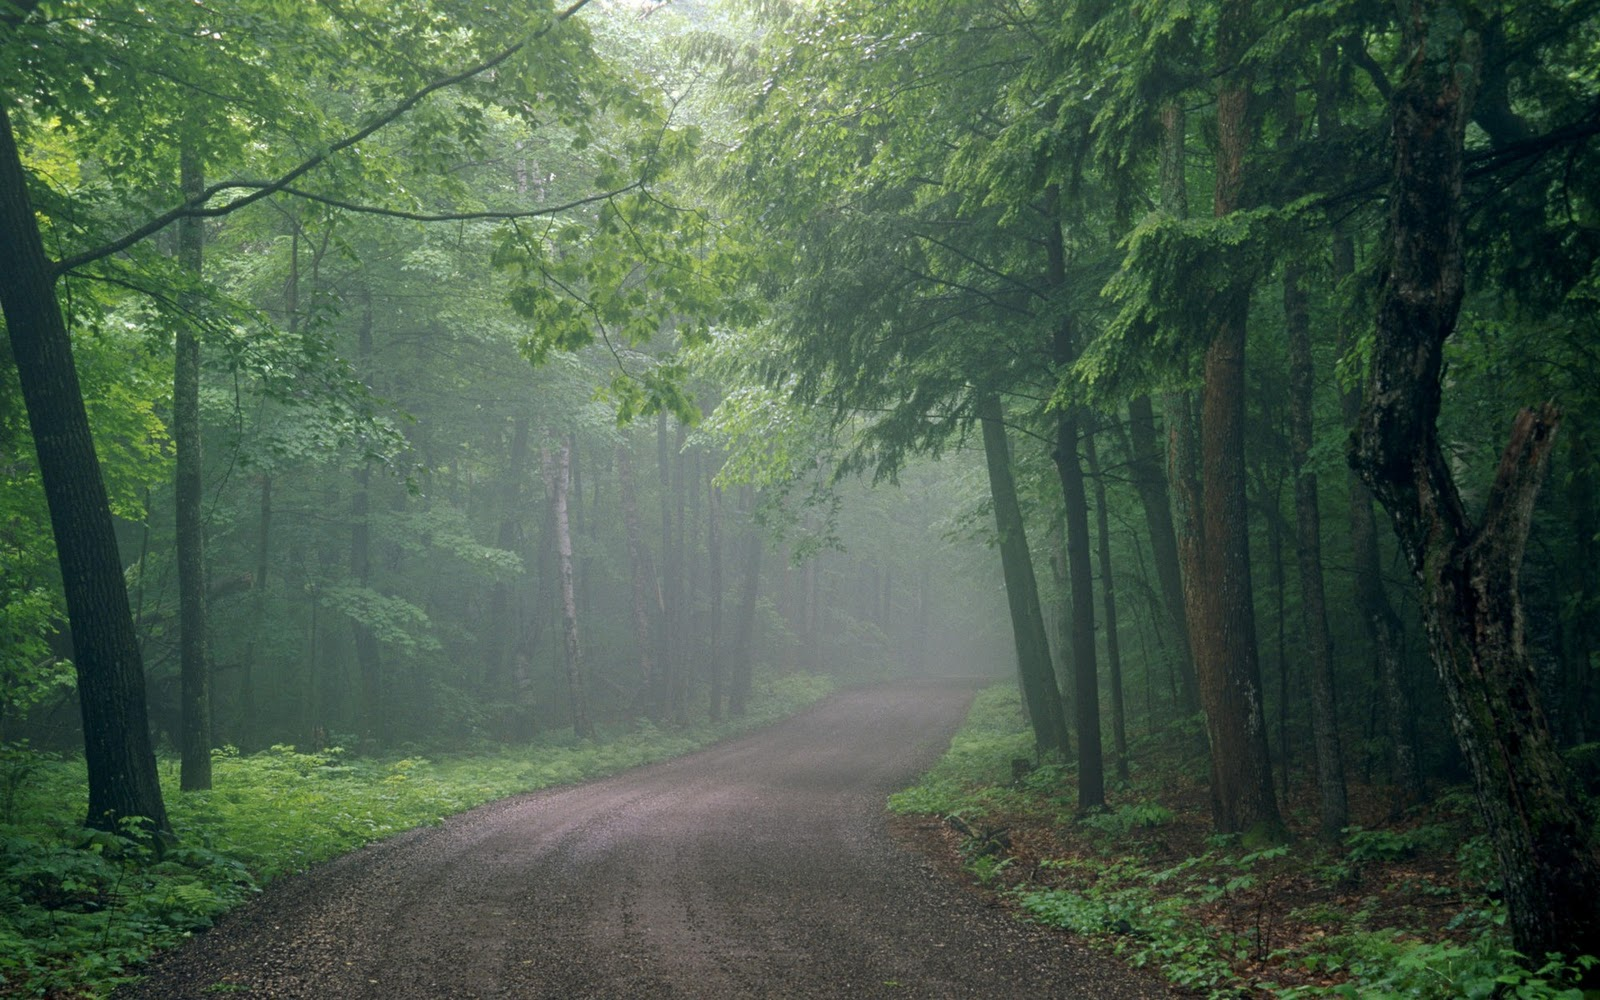 lush green forest wallpaper - photo #2